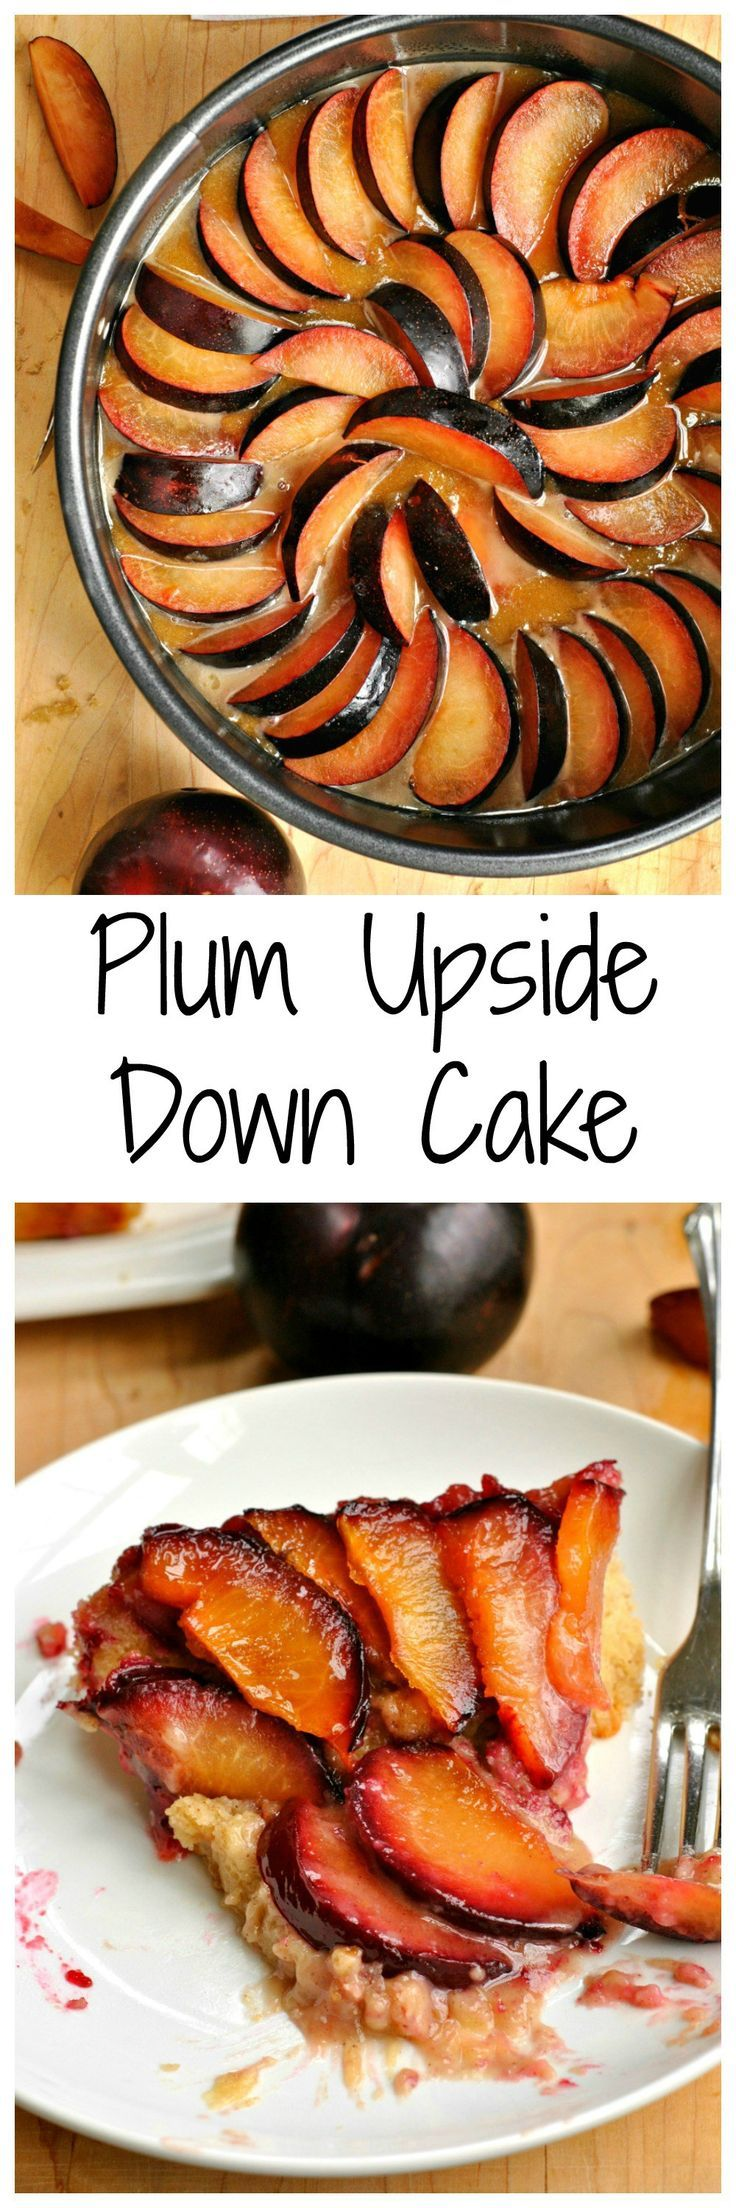 Fresh sliced plums arranged in a layer make this Plum Upside Down Cake so pretty! The plums are covered in a light caramel sauce and the cake below is light and airy!